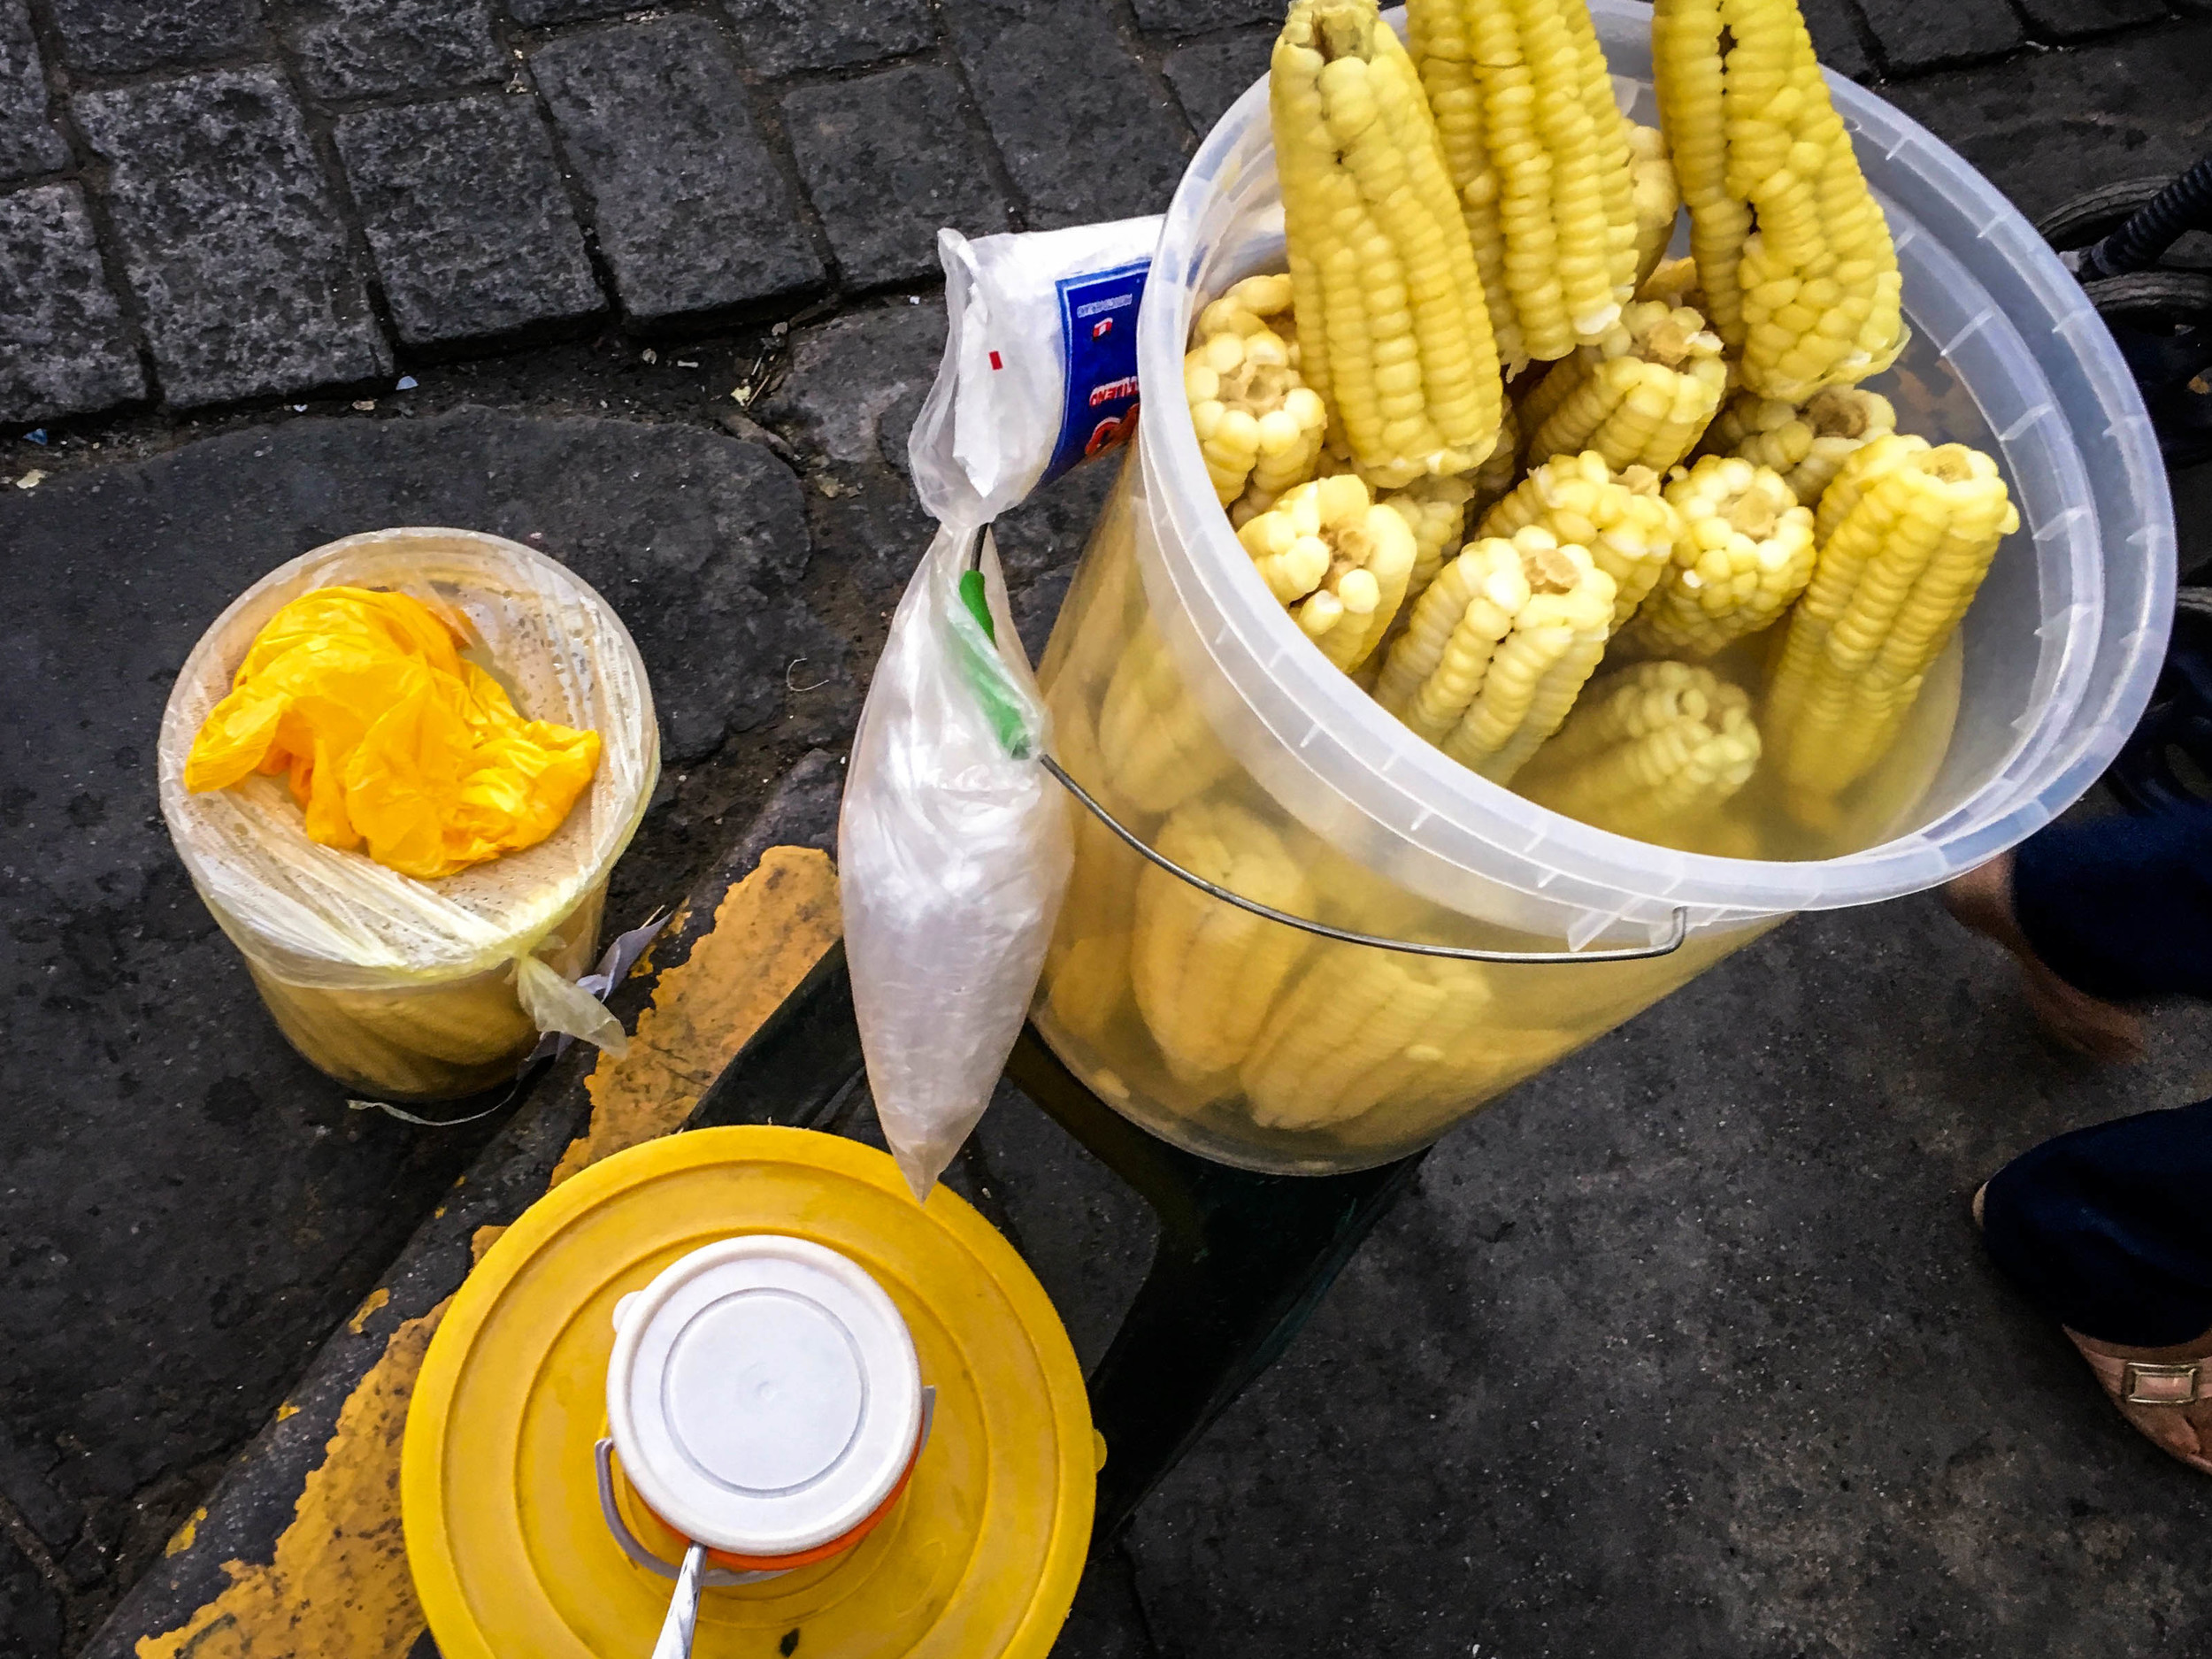 Boiled corn with butter is a popular street snack. The kernals are thick and juicy.